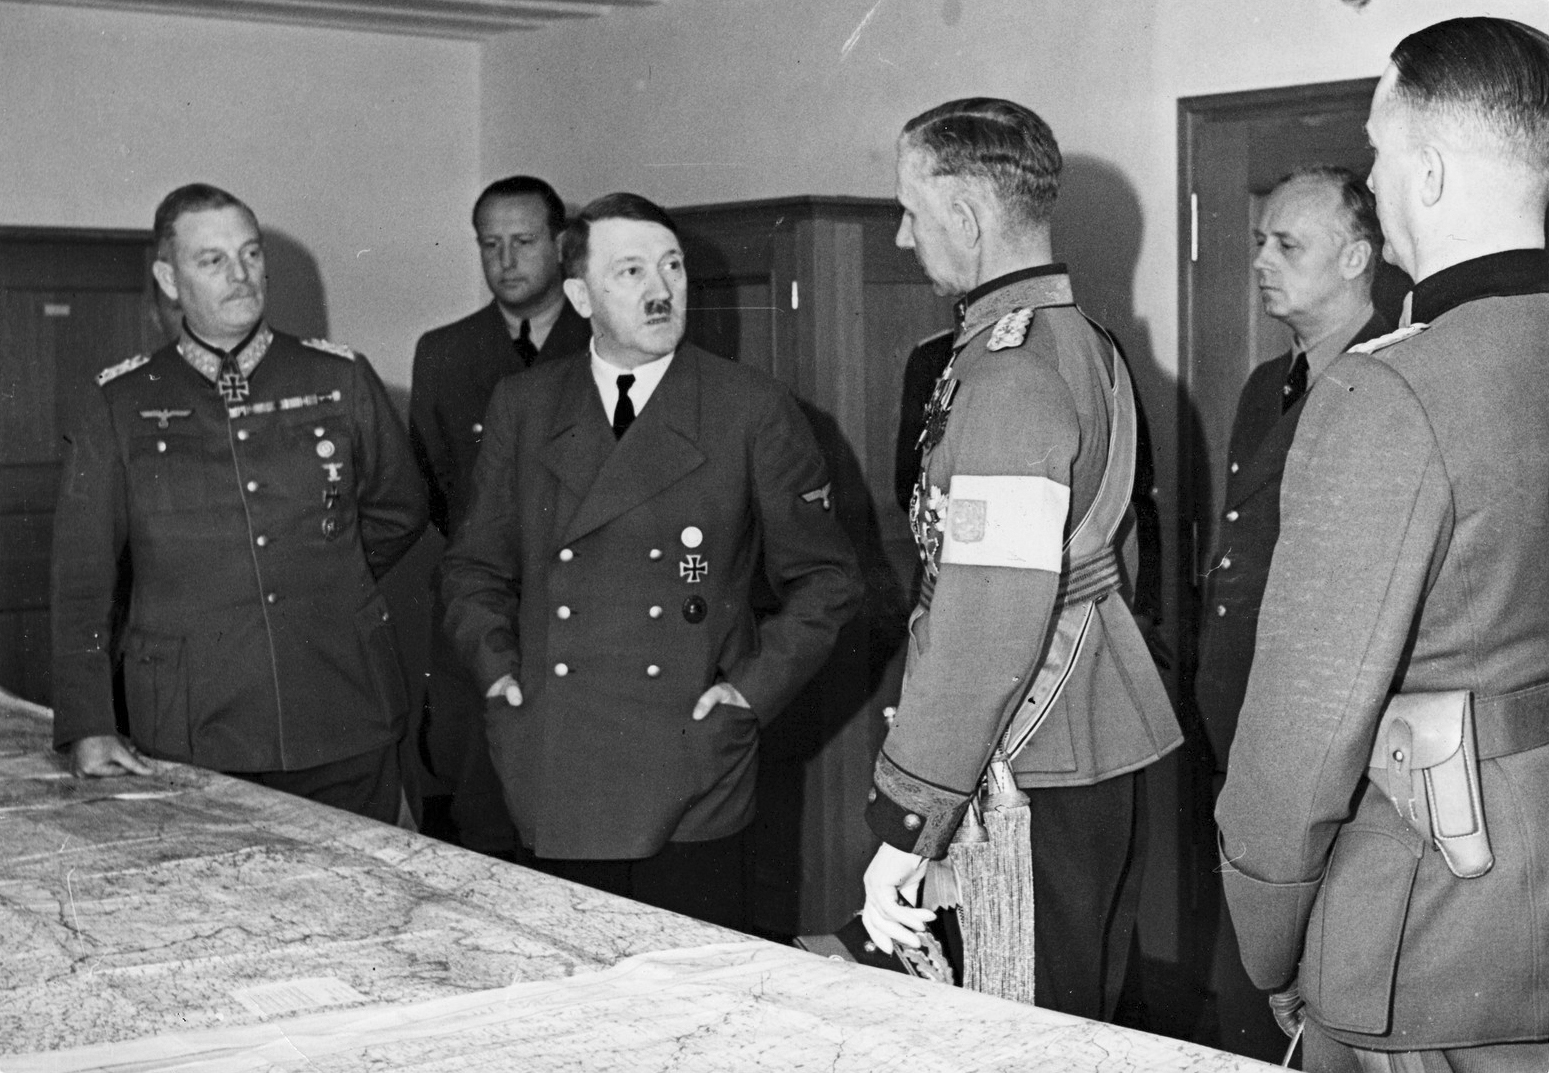 Adolf Hitler at a situation conference with general Wilhelm Keitel, lieutenant general of the Finnish army Harald Öhquist, Joachim von Ribbentrop and general Gerhard Matzky in FHQ Wolfsschanze